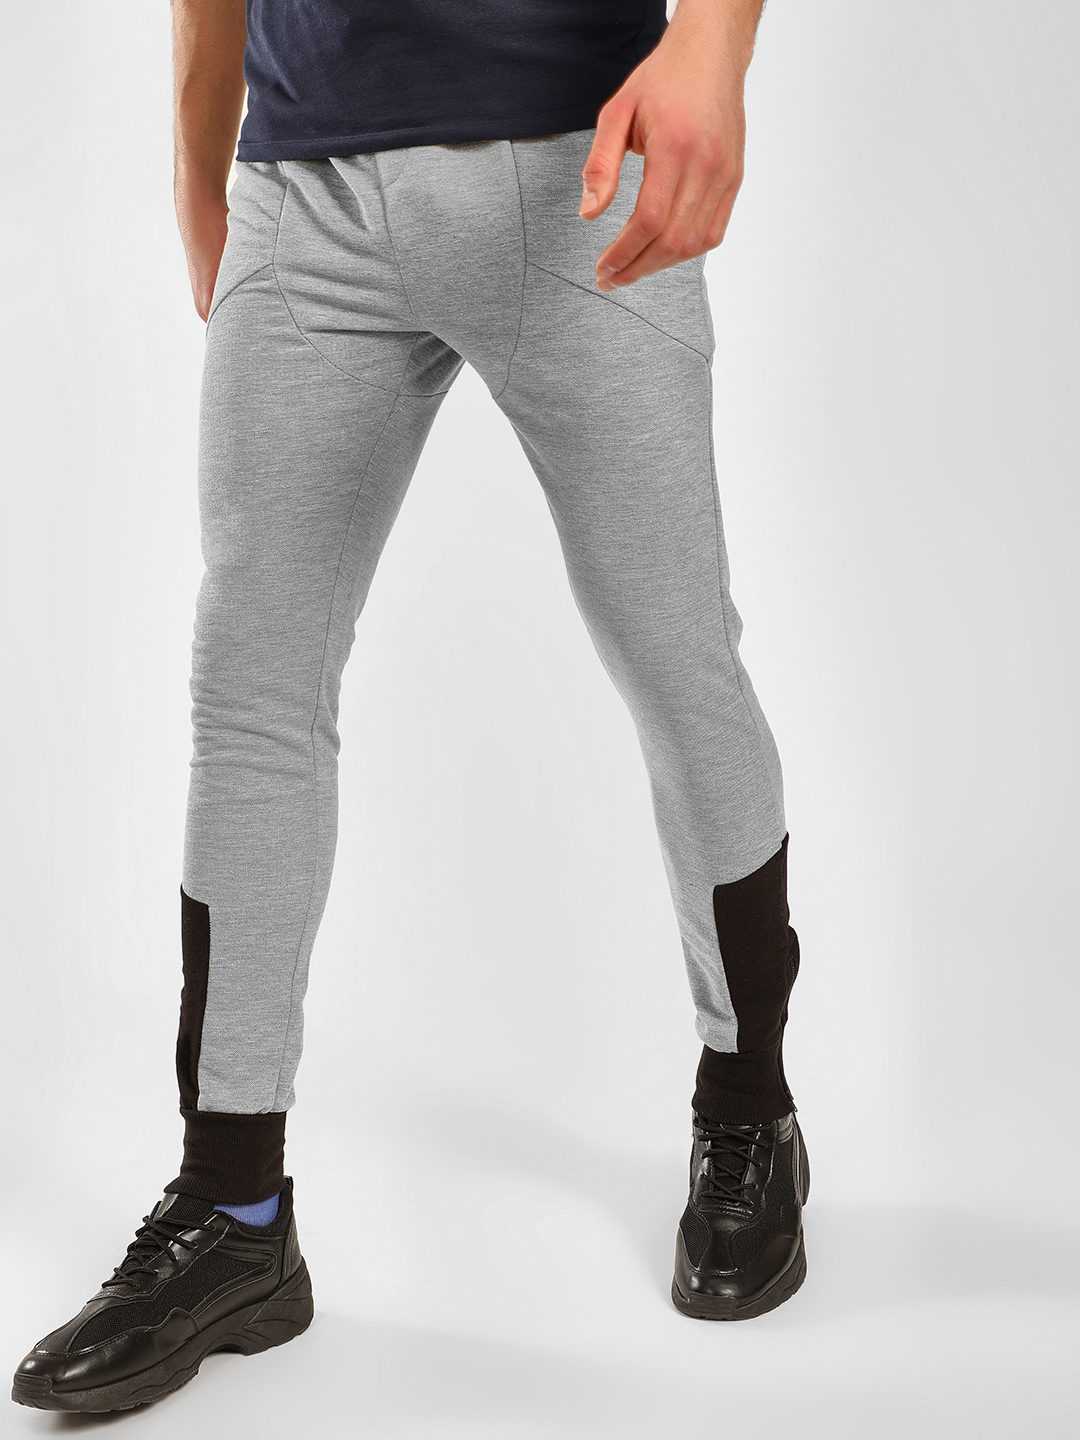 SKULT By Shahid Kapoor Grey Colour Block Panelled Joggers 1